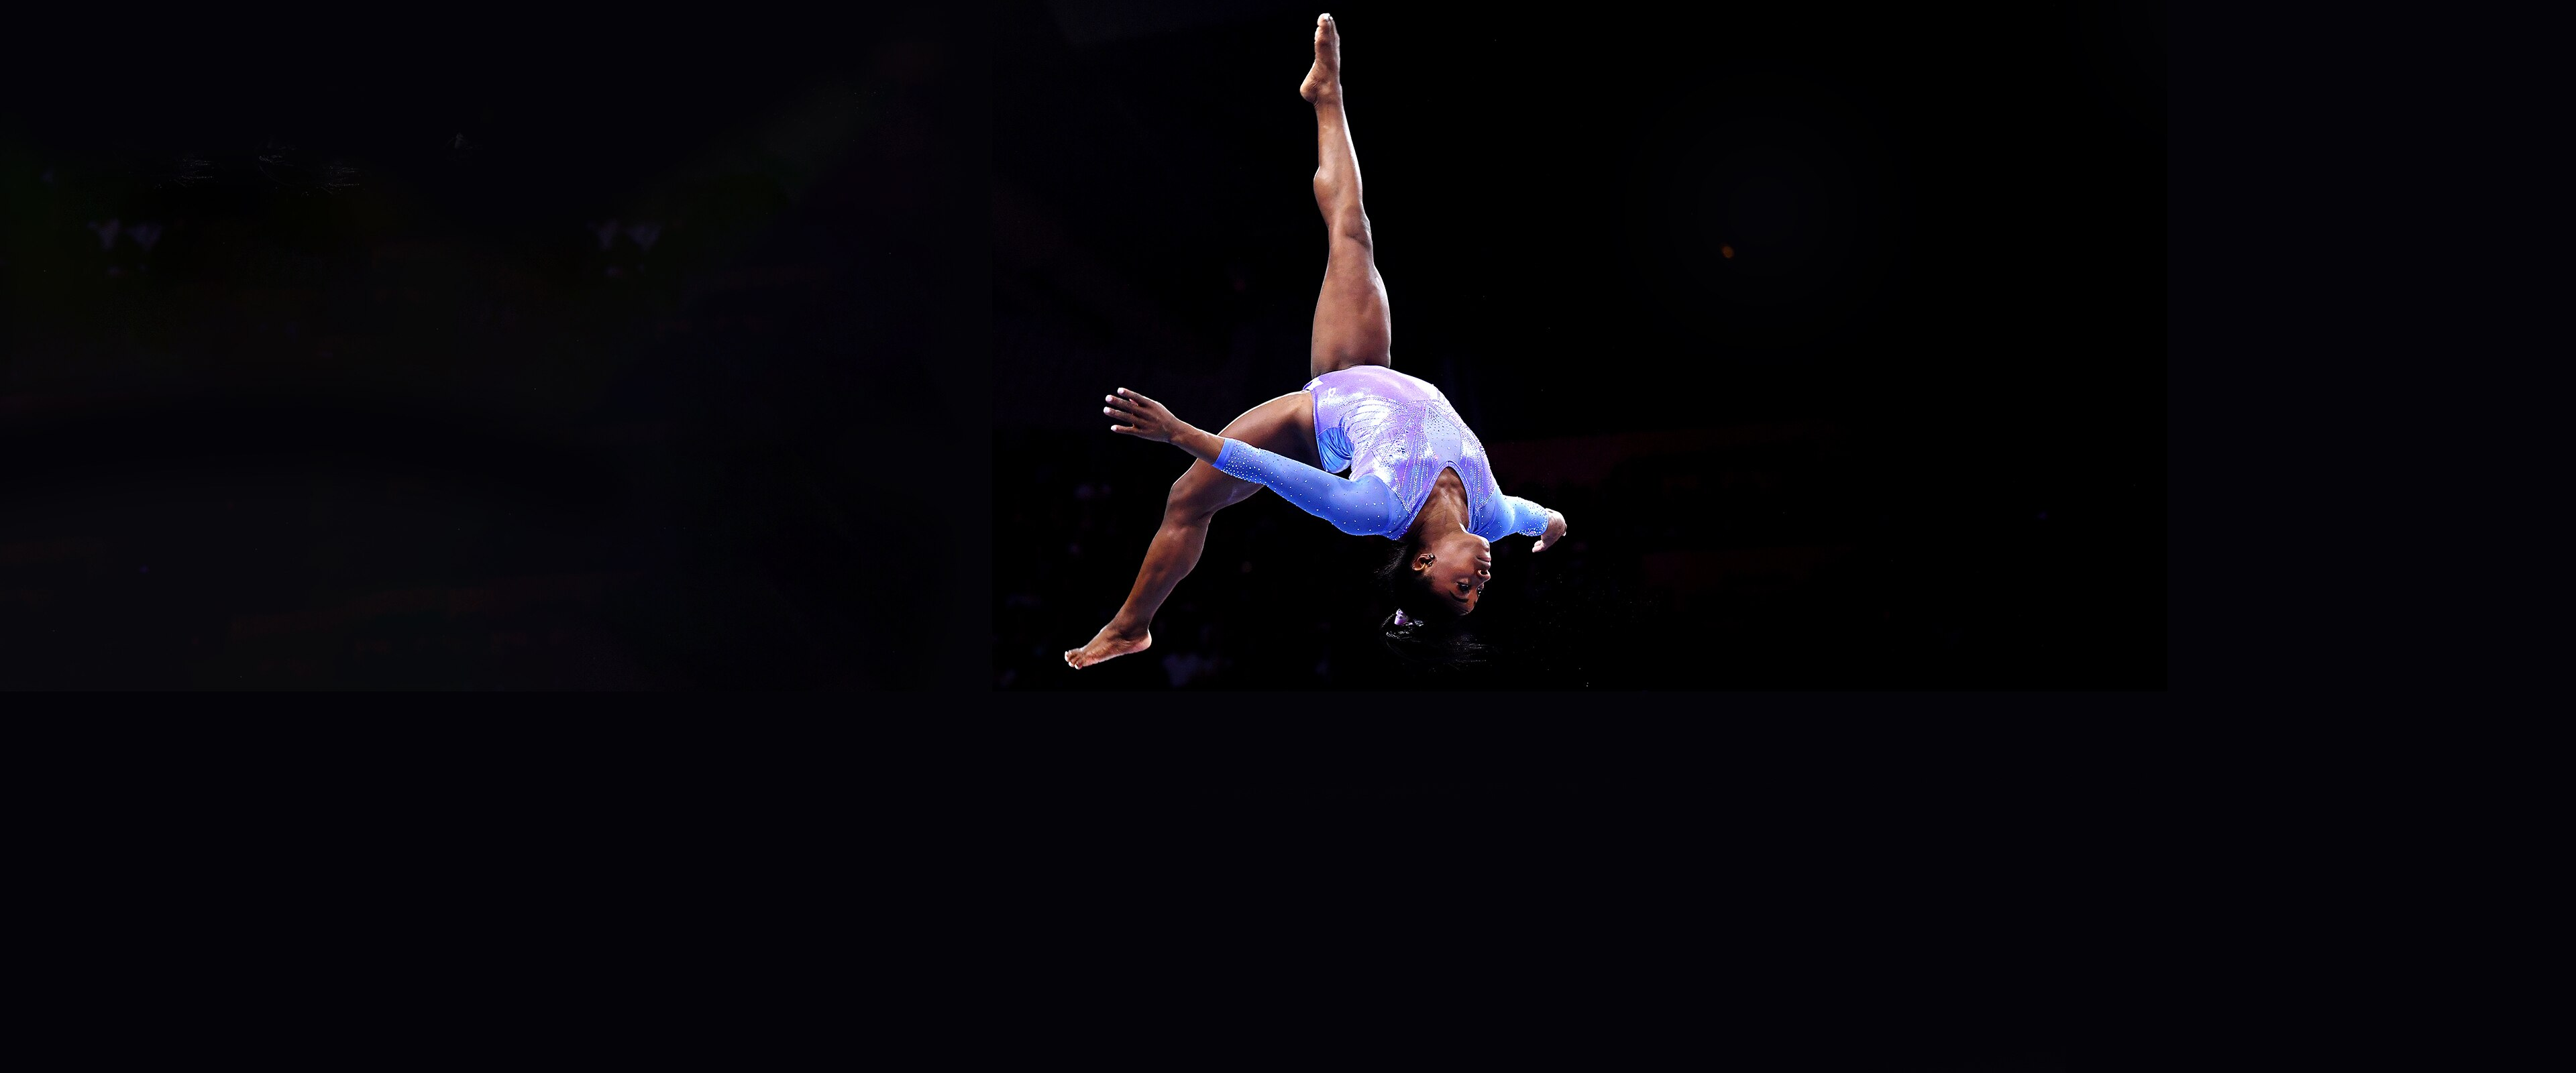 Winter Olympics Gymnastics 2020.The Legend Of Simone Biles Continues To Grow Olympic News